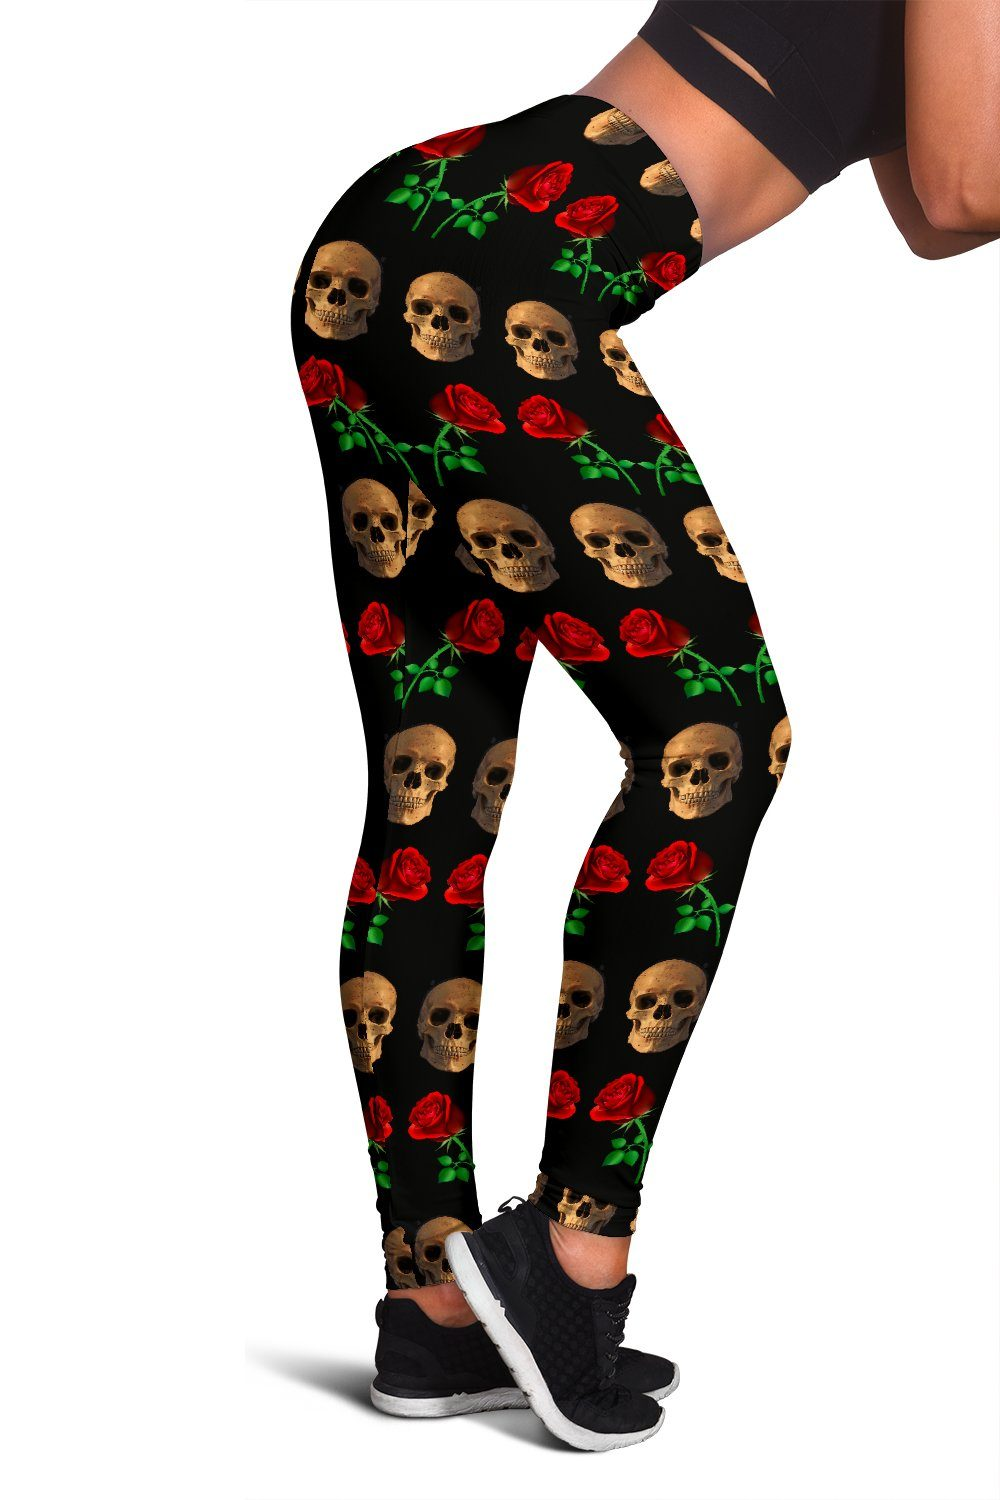 Skull and Rose Design Womens Leggings